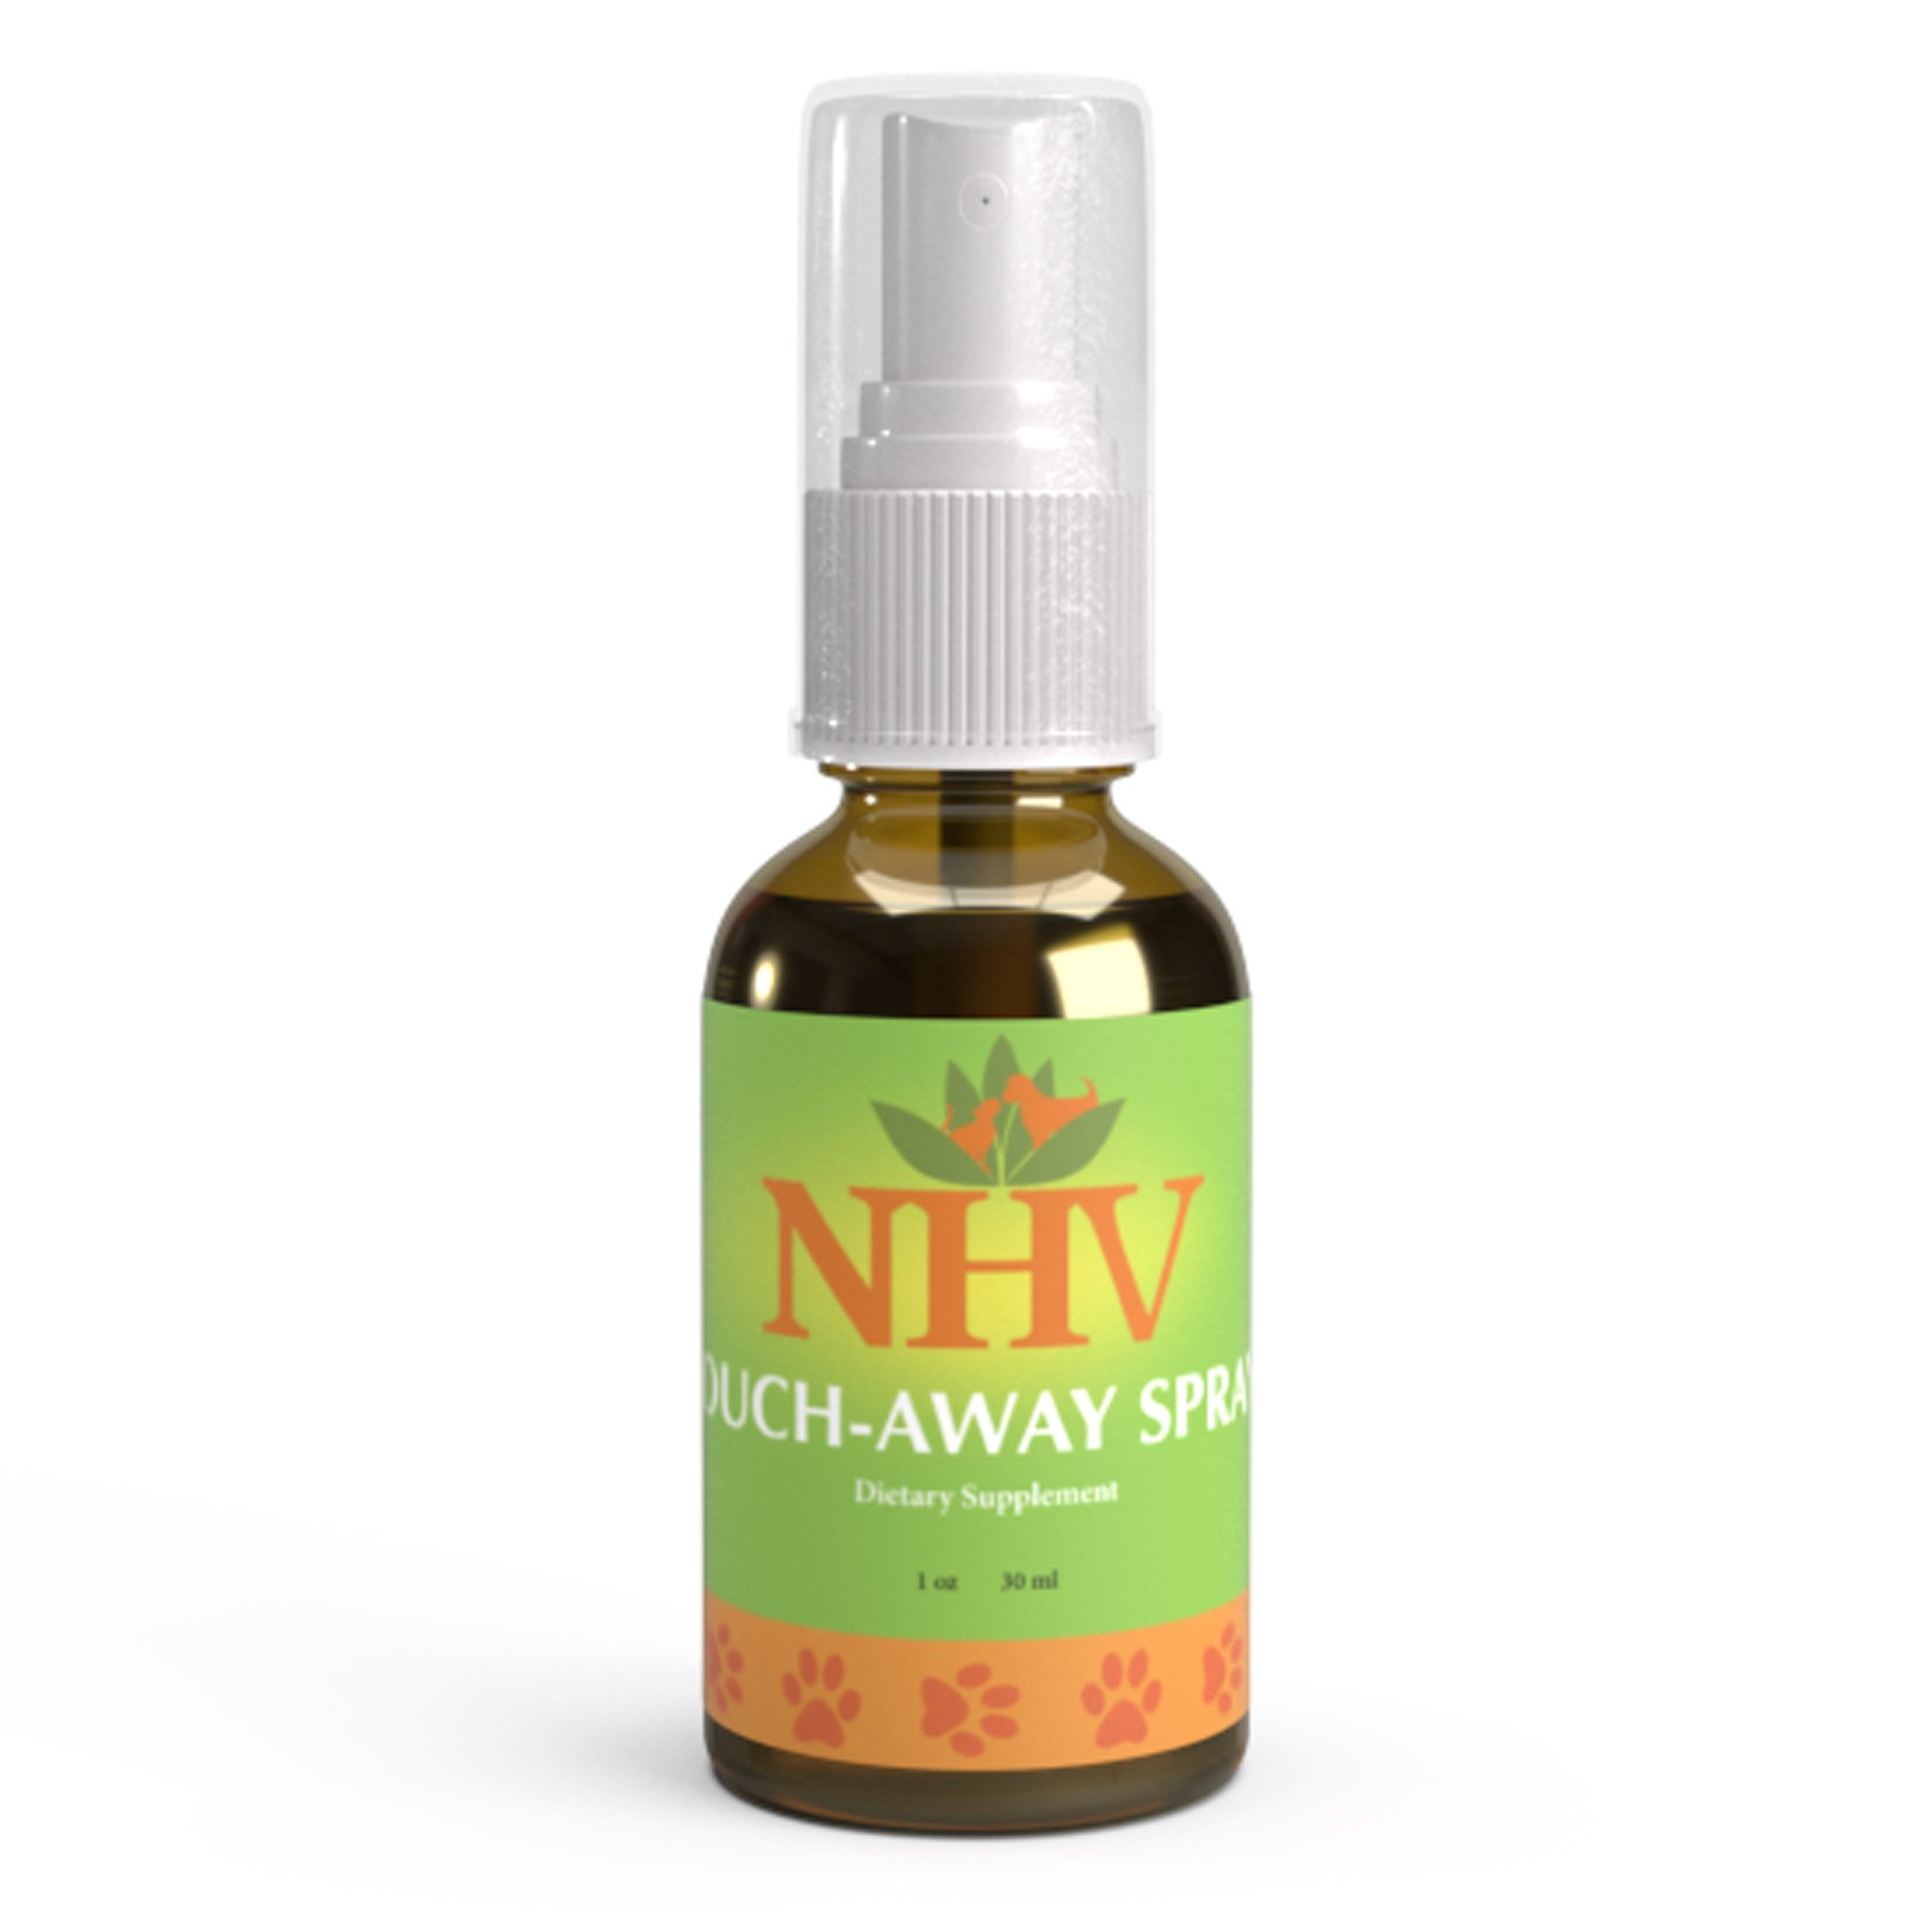 Aid for Dermatitis, Skin Infections and Irritations in Cats and Dogs: NHV Ouch Away Spray